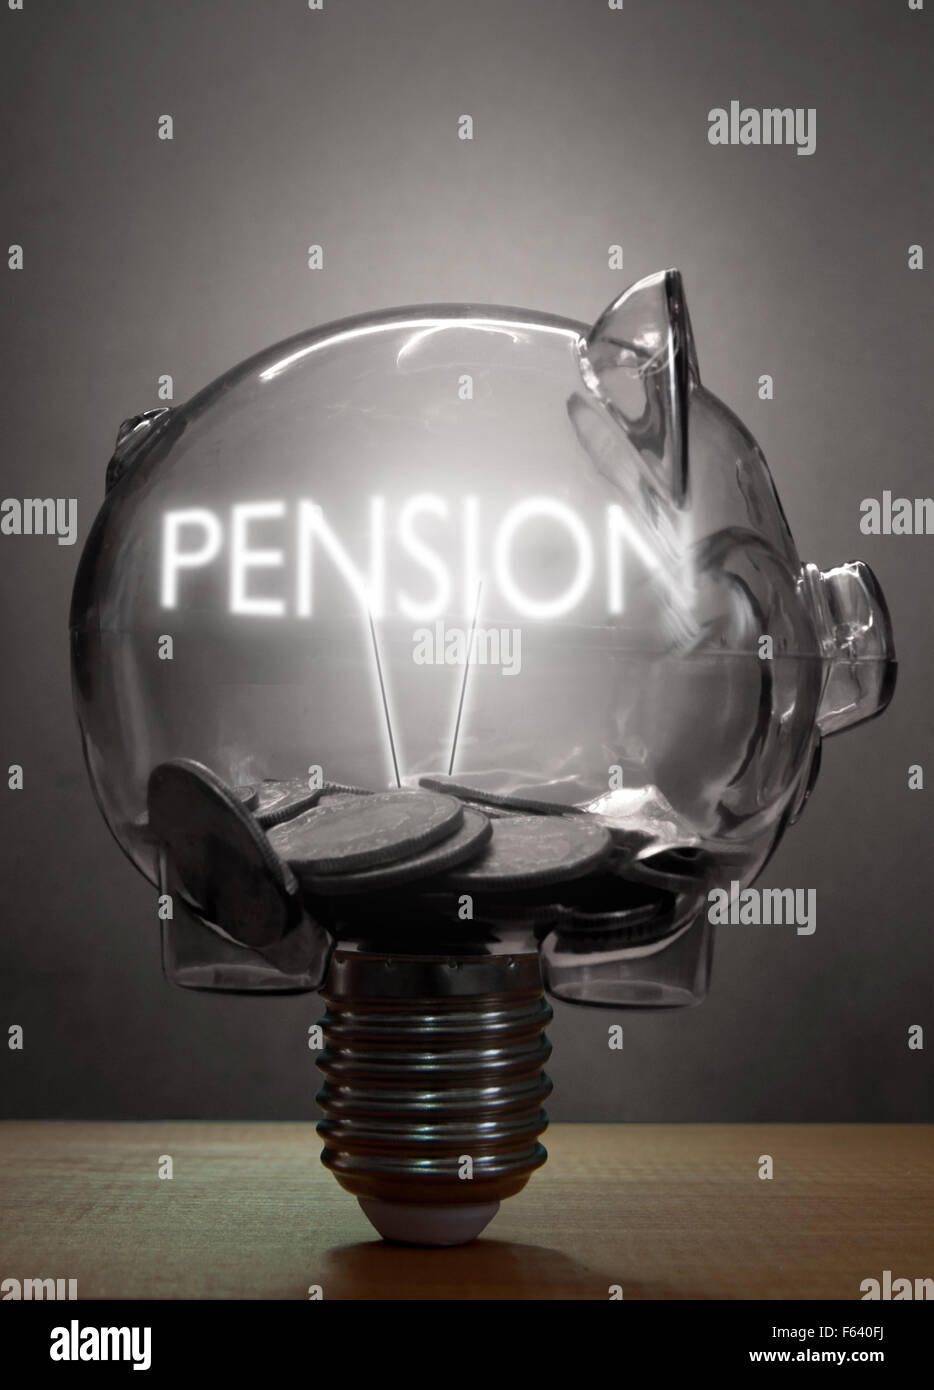 Piggybank light bulb with pension lit text inside and cash - Stock Image